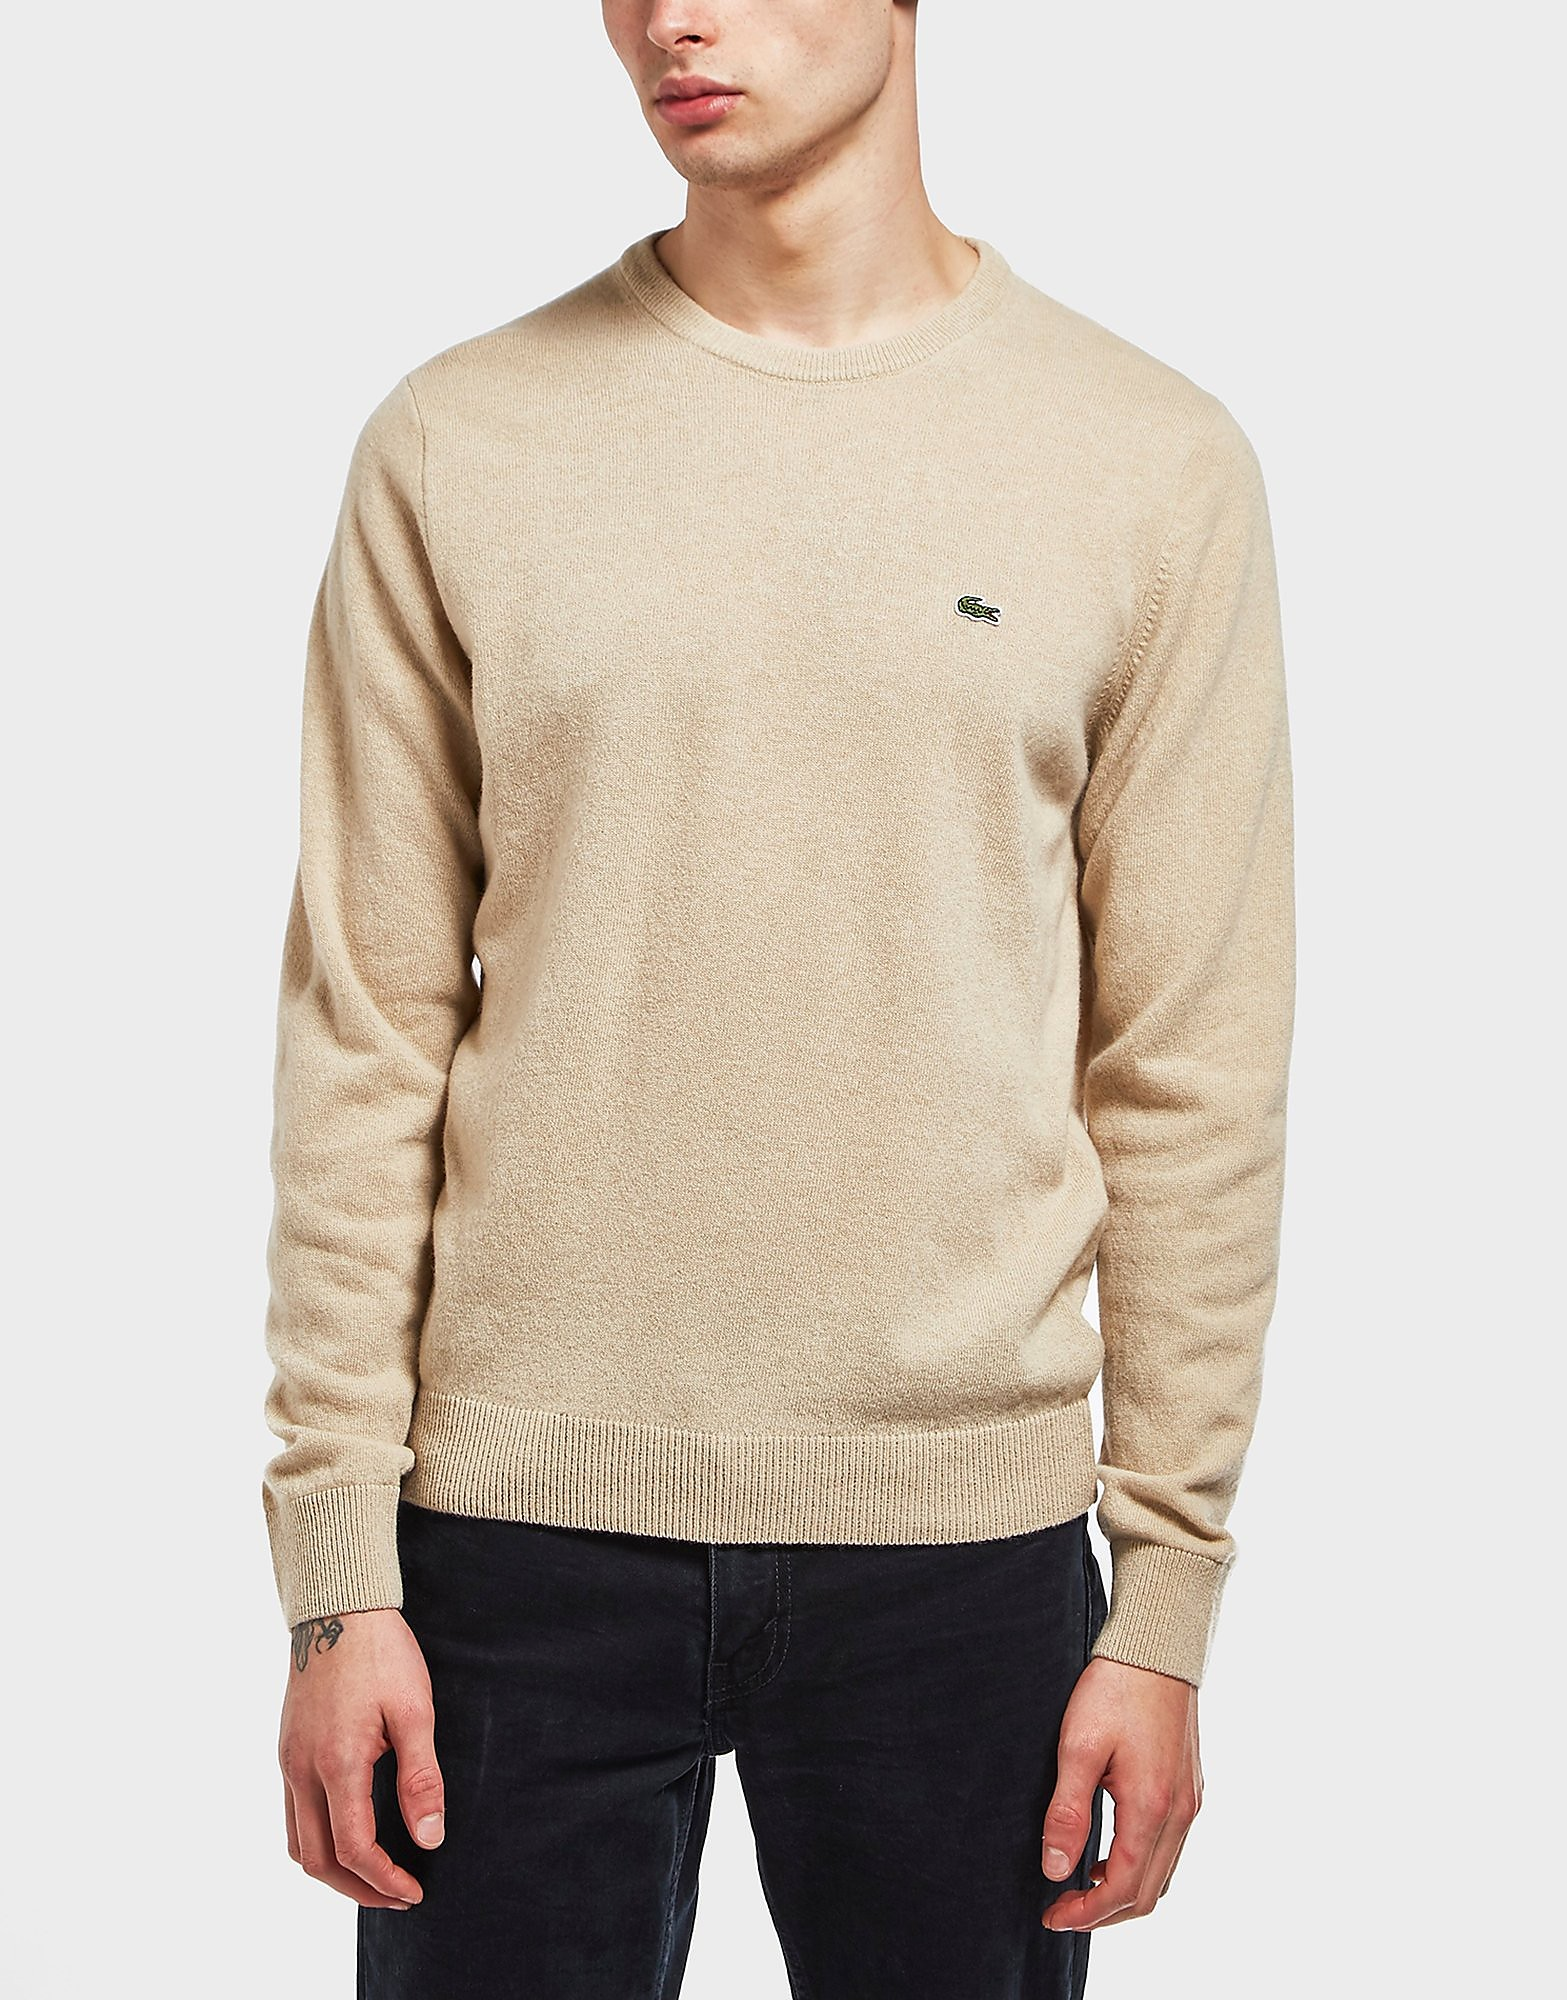 Lacoste Knitted Jumper